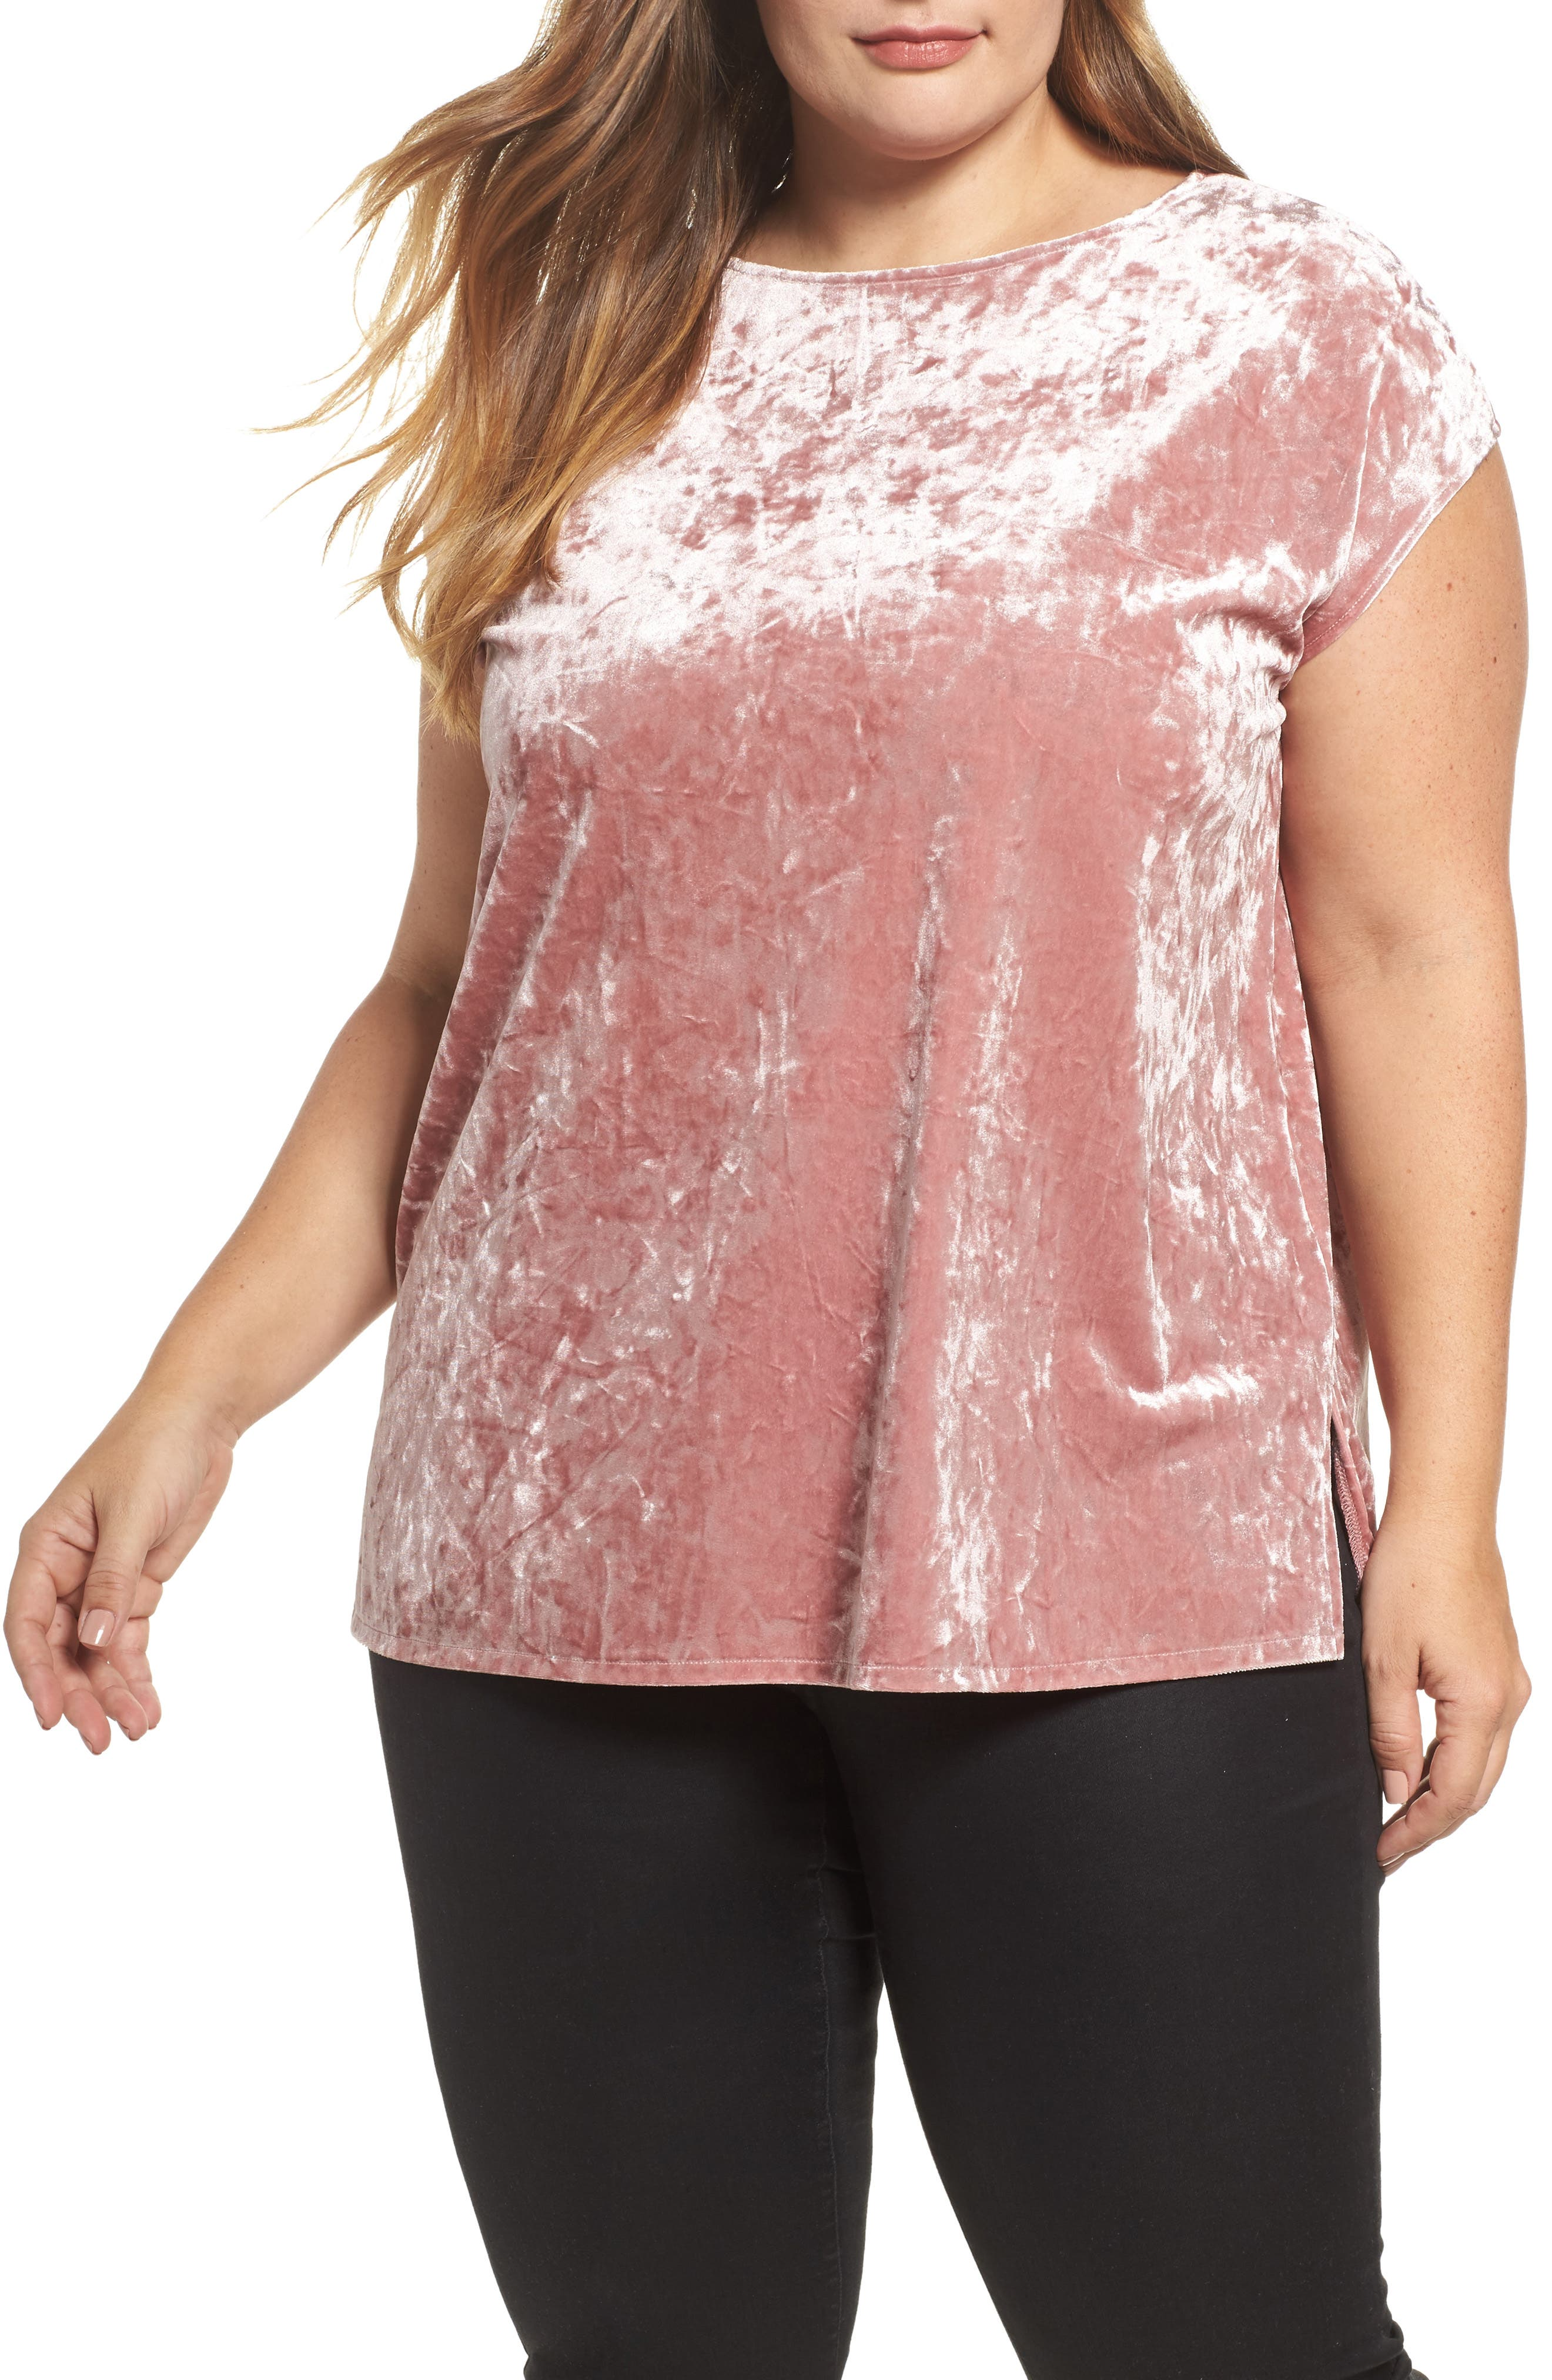 Alternate Image 1 Selected - Vince Camuto Crushed Velvet Knit Tee (Plus Size)